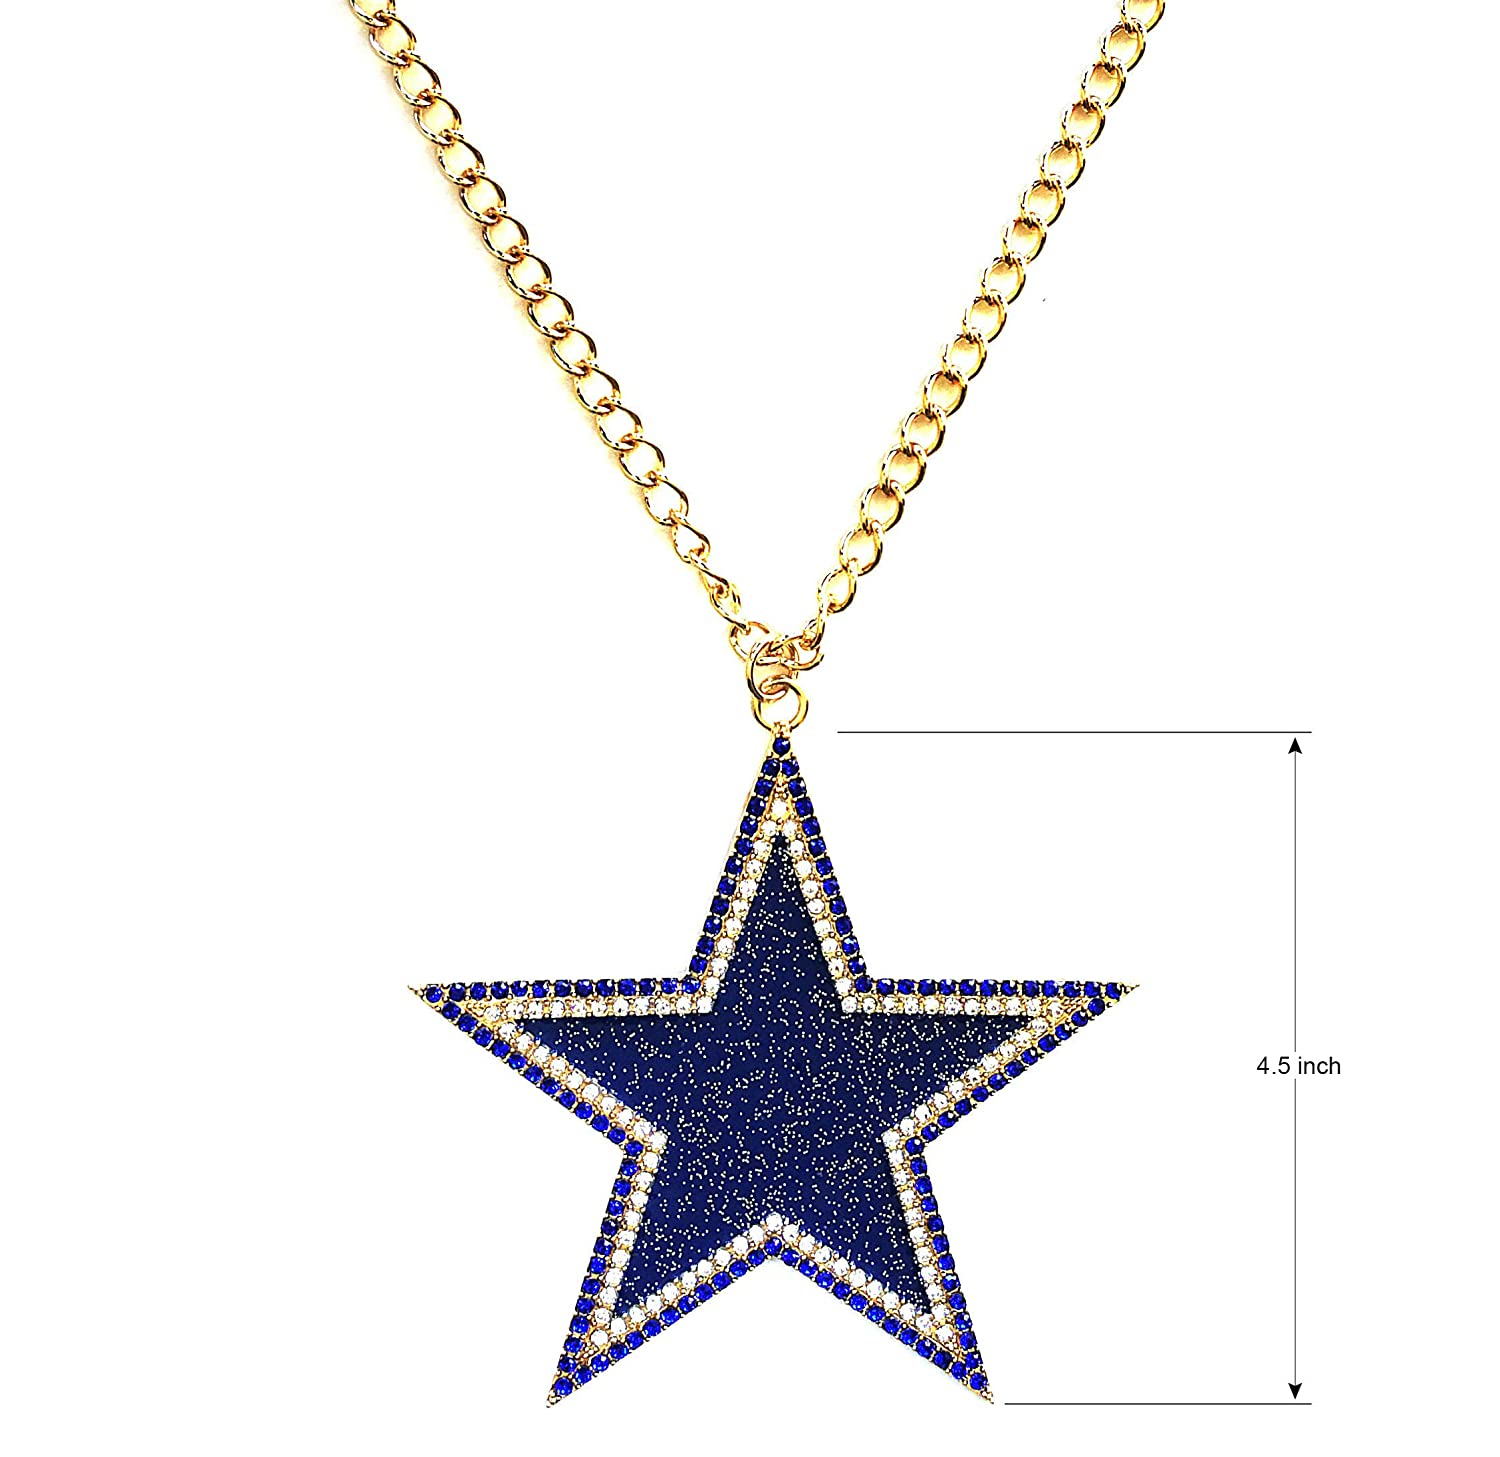 MT-Sports Football Diamonds Plus Necklace Pendant Jewelry Fashion Gifts for Men Women 14K Gold Plated